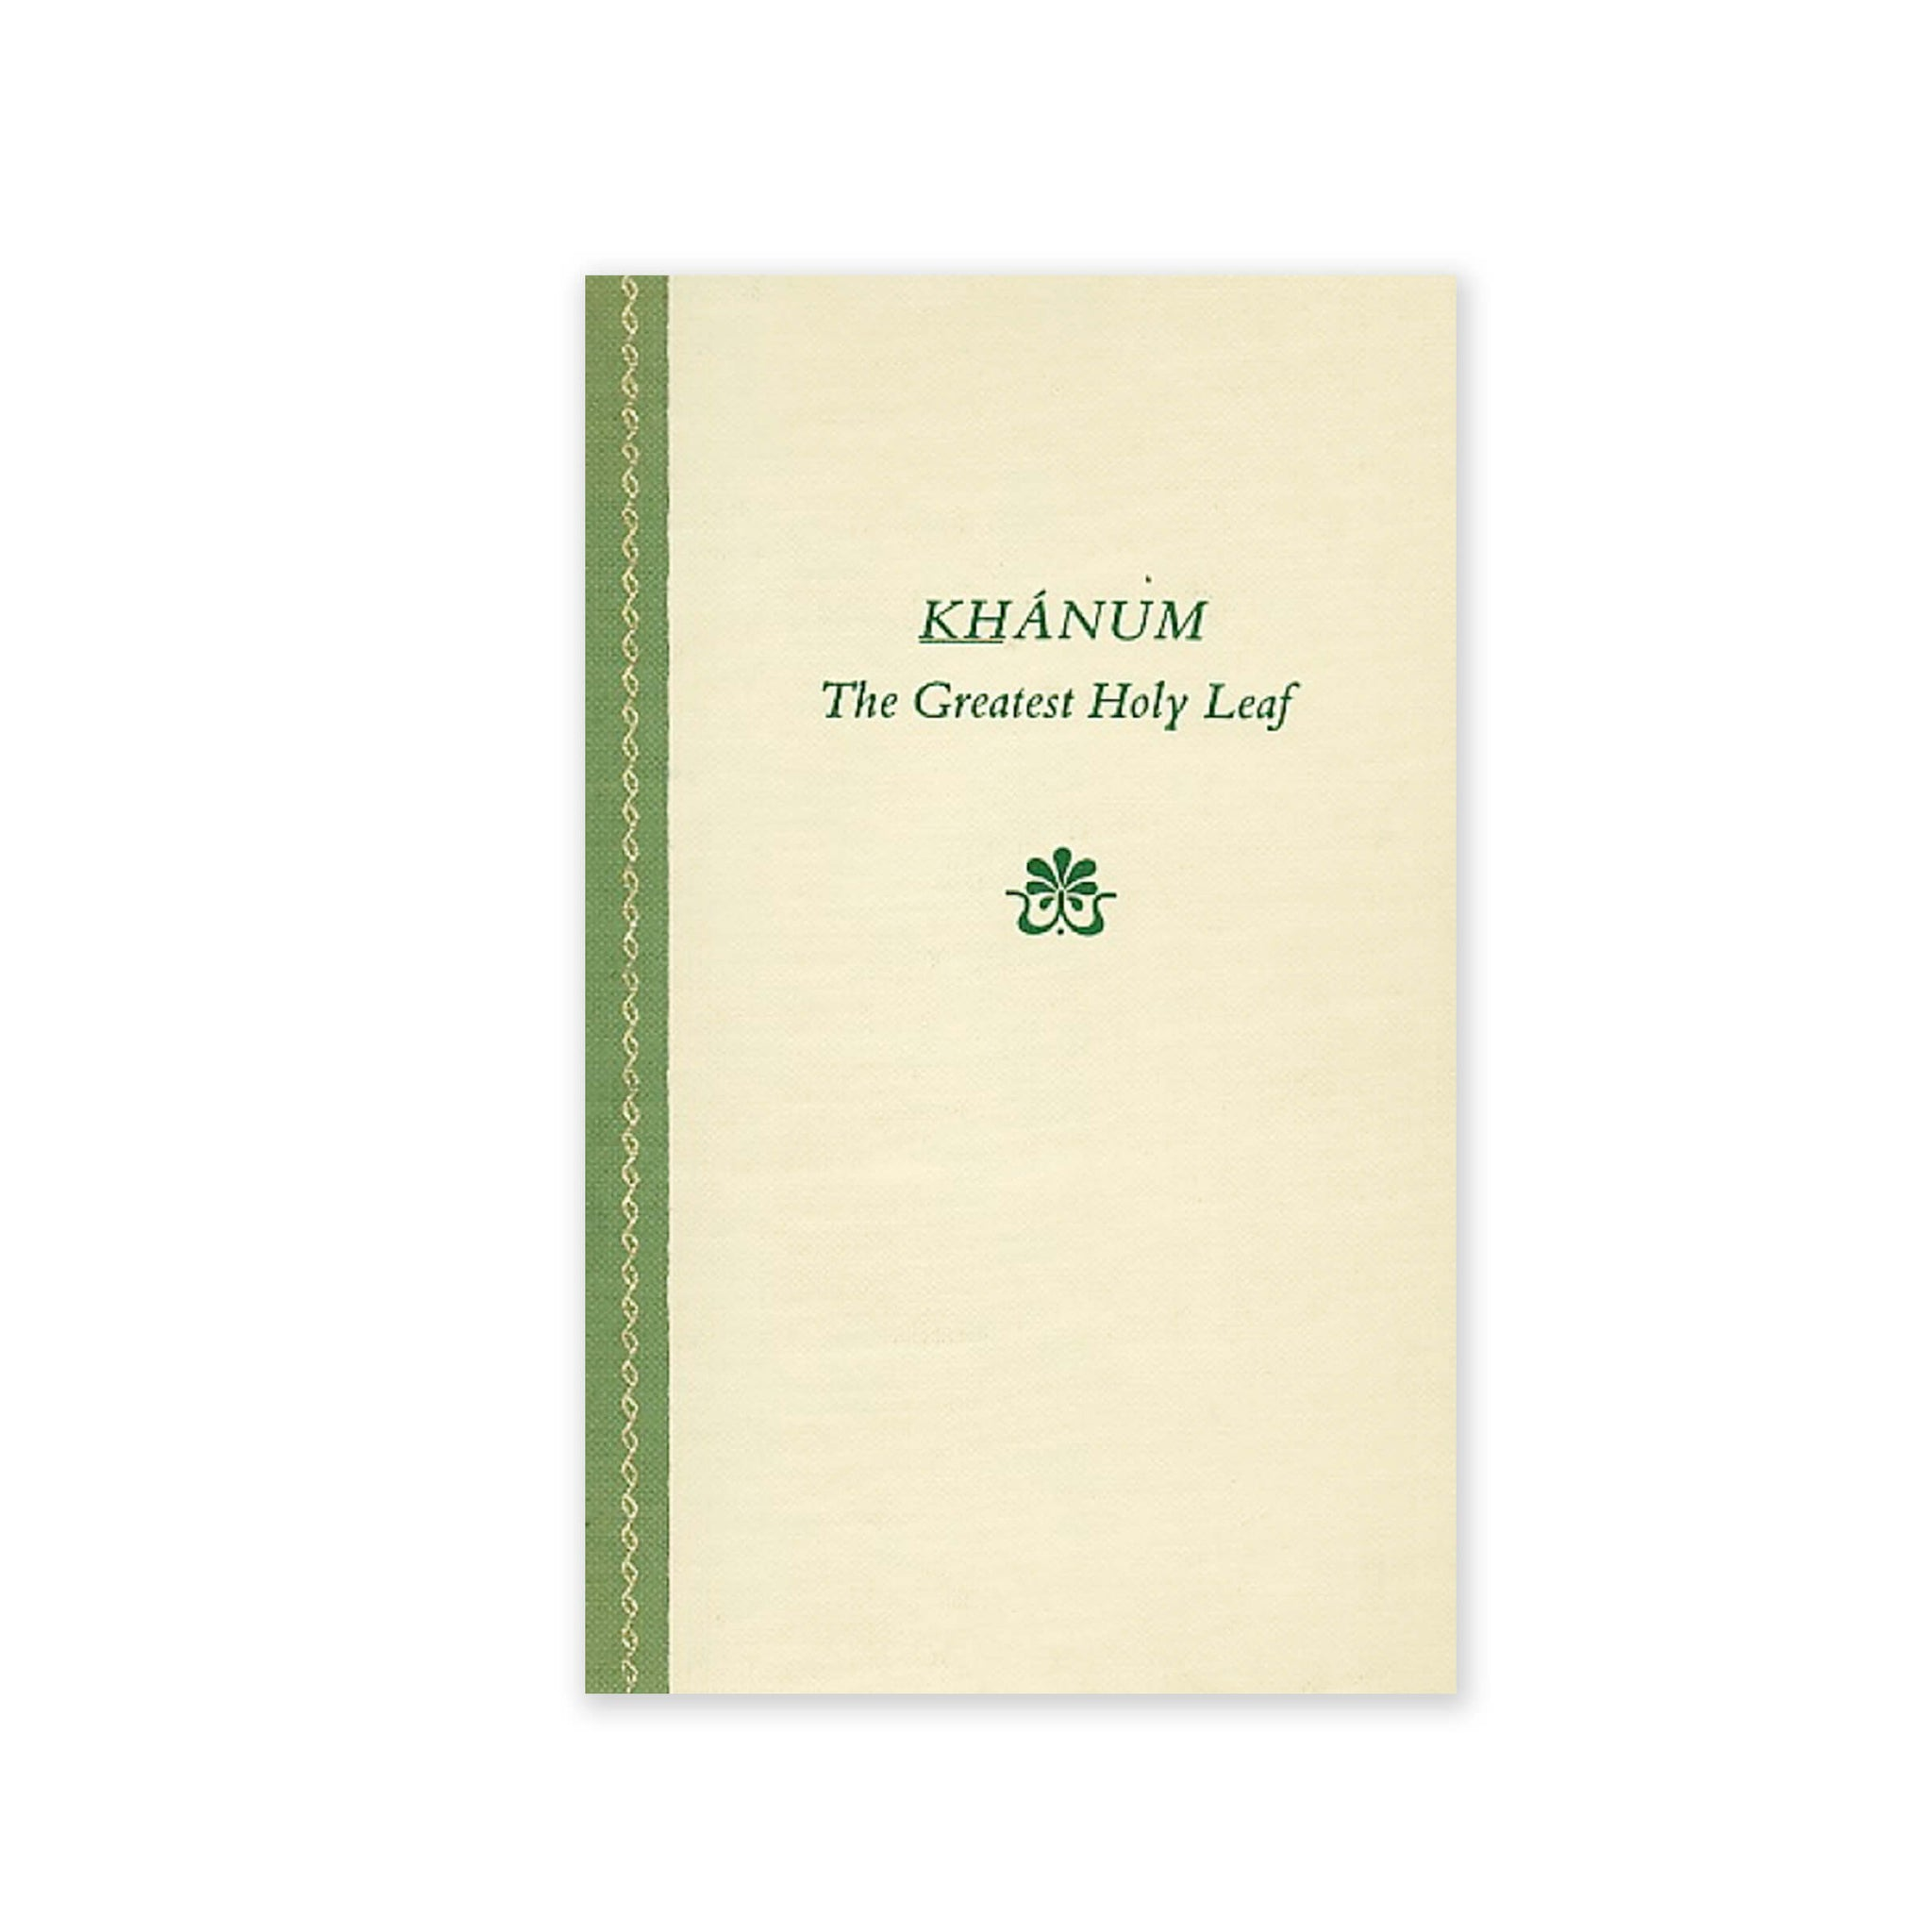 Khanum, The Greatest Holy Leaf - As remembered by Marzieh Gail